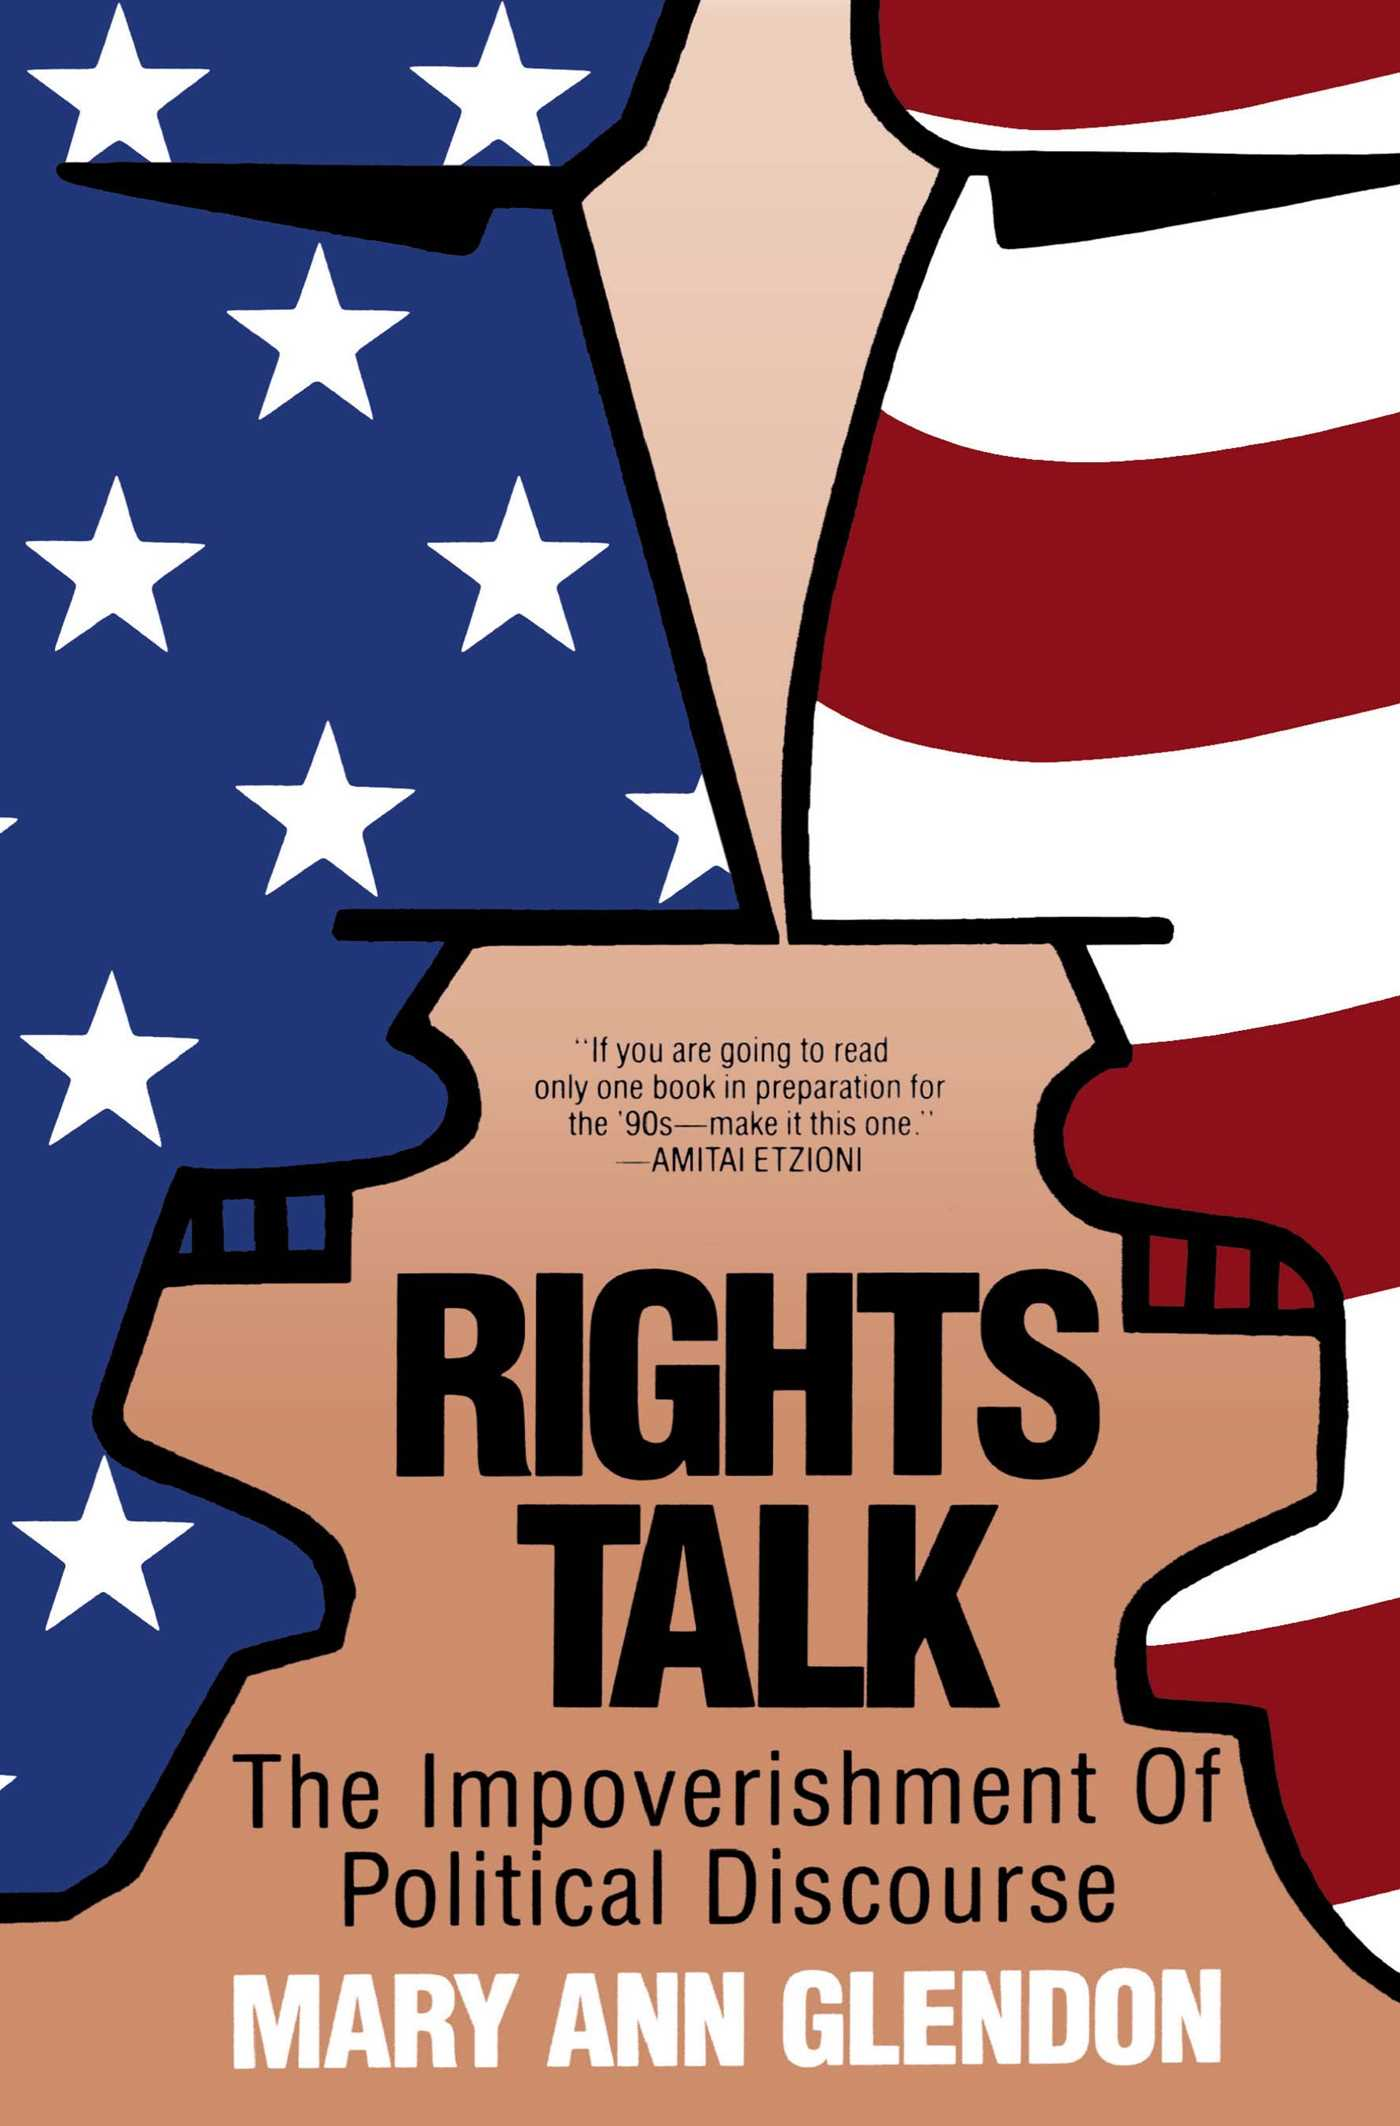 Rights talk 9780029118238 hr